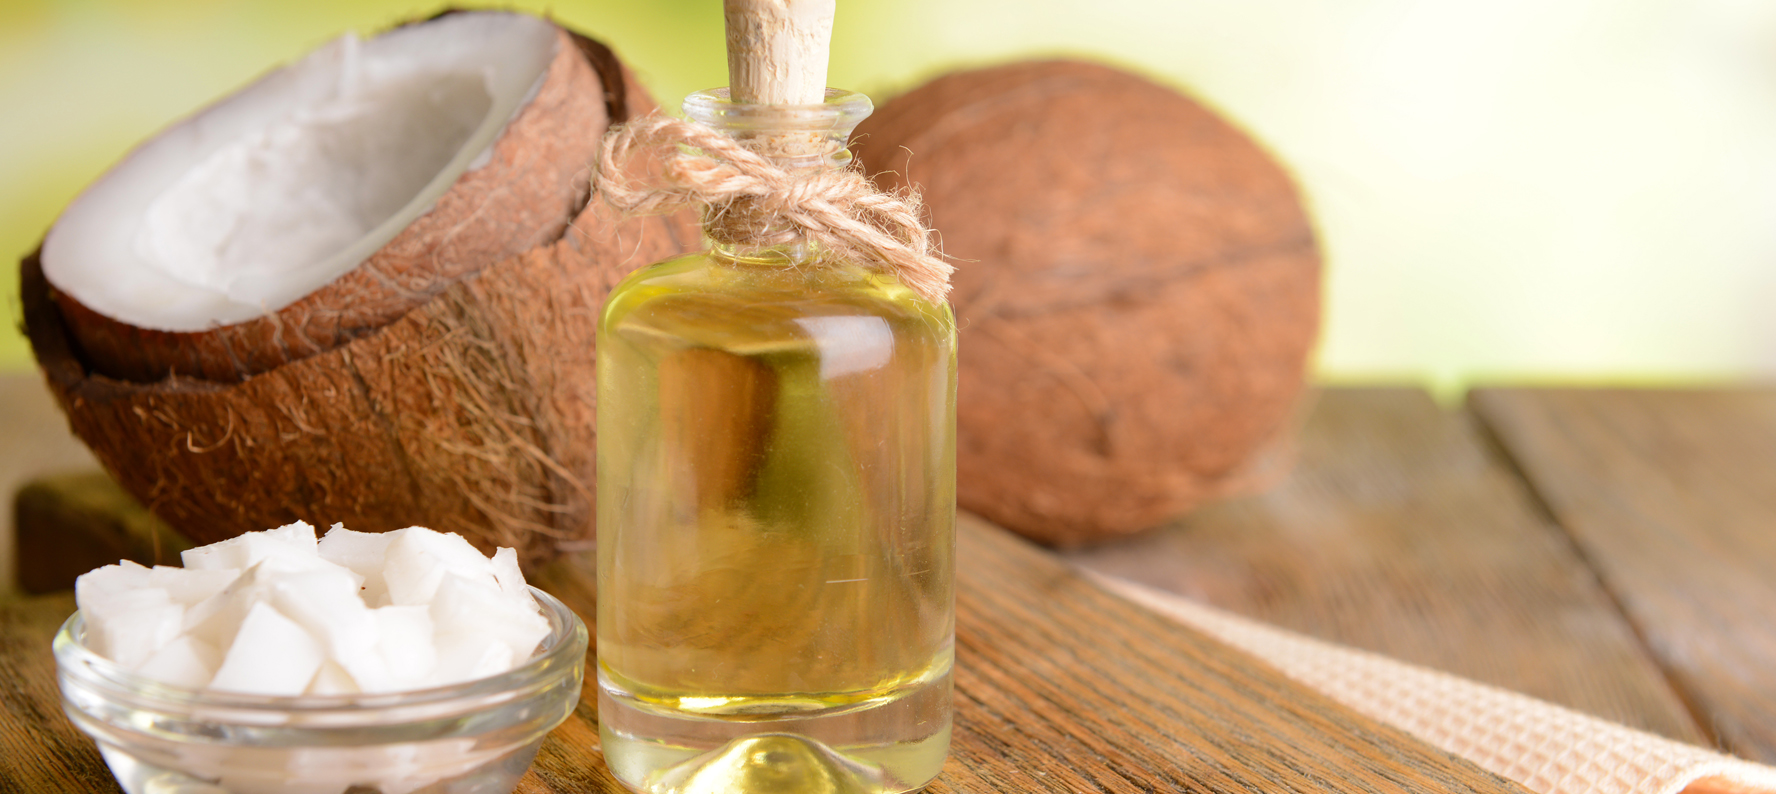 the traditional industry of coconut oil Coconut oil is a highly saturated oil derived from coconuts, made up primarily of lauric acid and other medium-chain triglycerides, which are each member of our research team is required to have no conflicts of interest, including with supplement manufacturers, food companies, and industry funders.